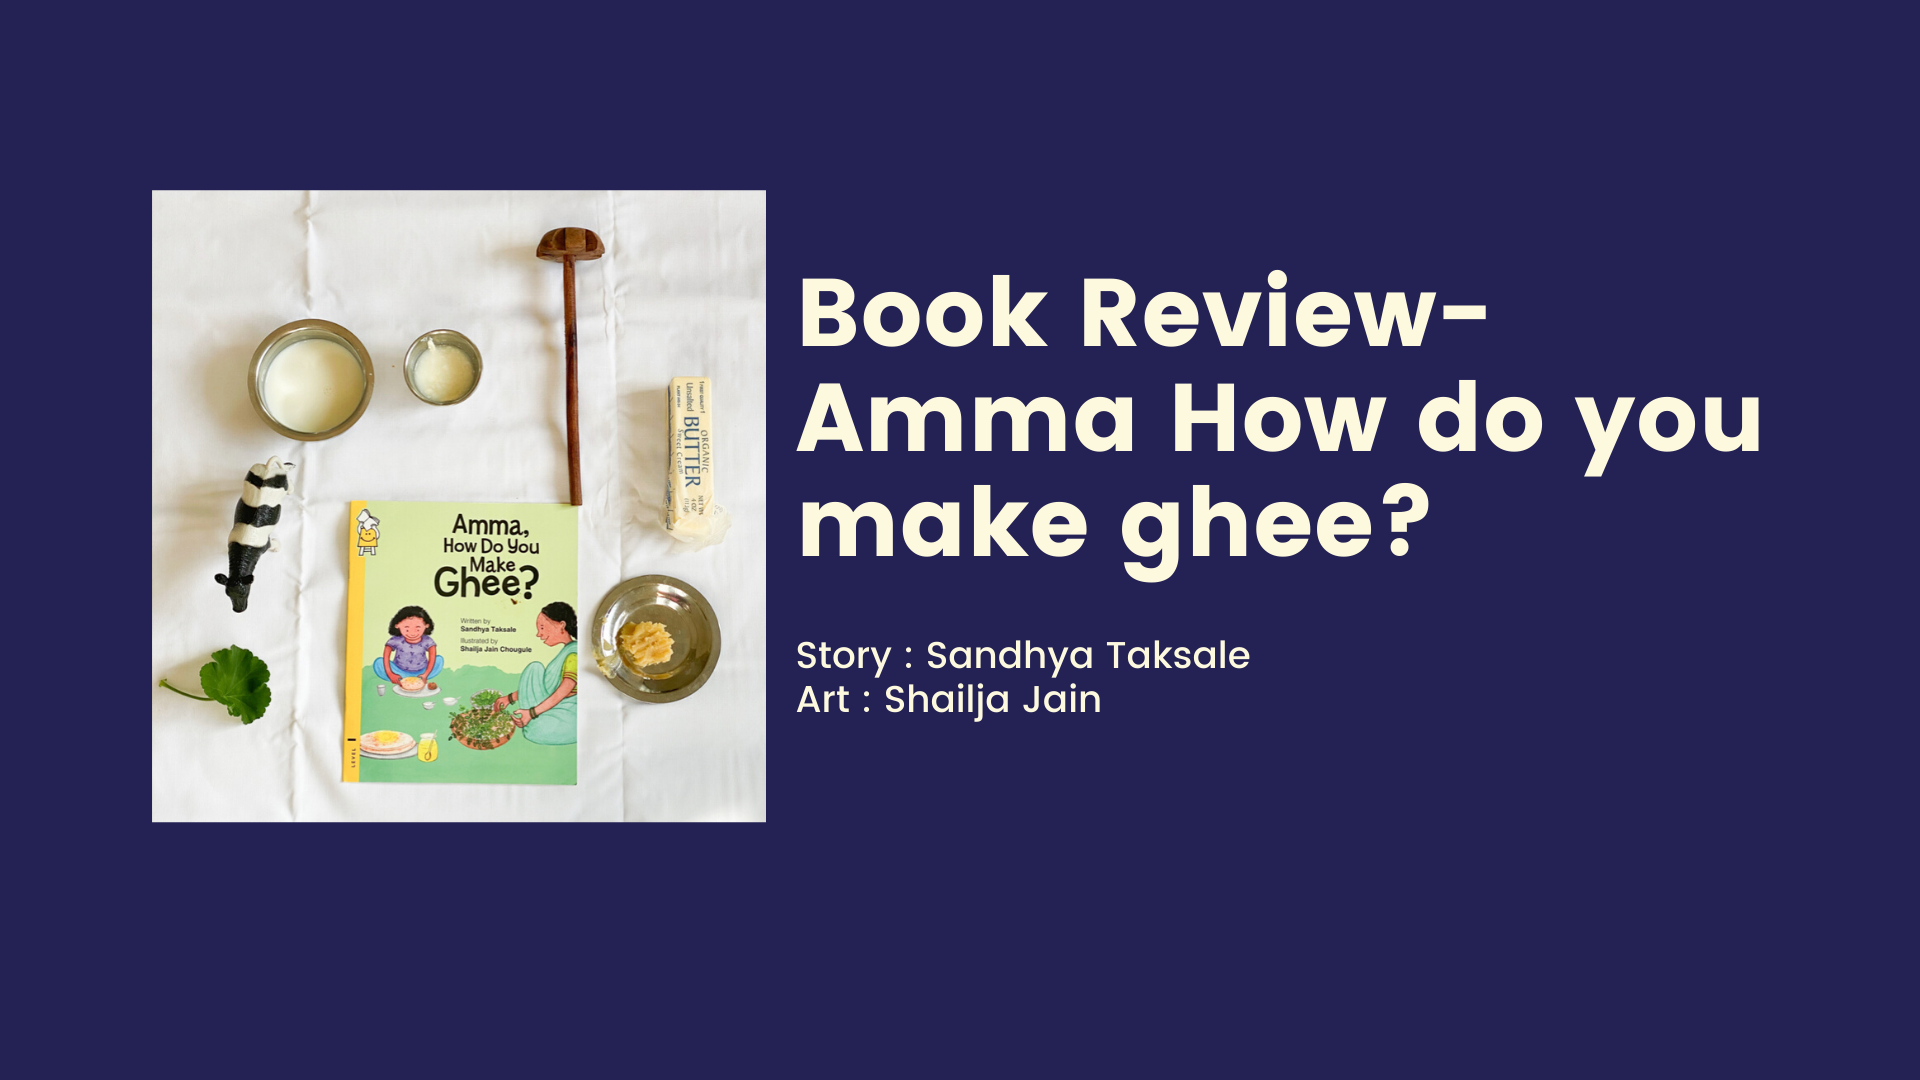 Amma, How do you make ghee?